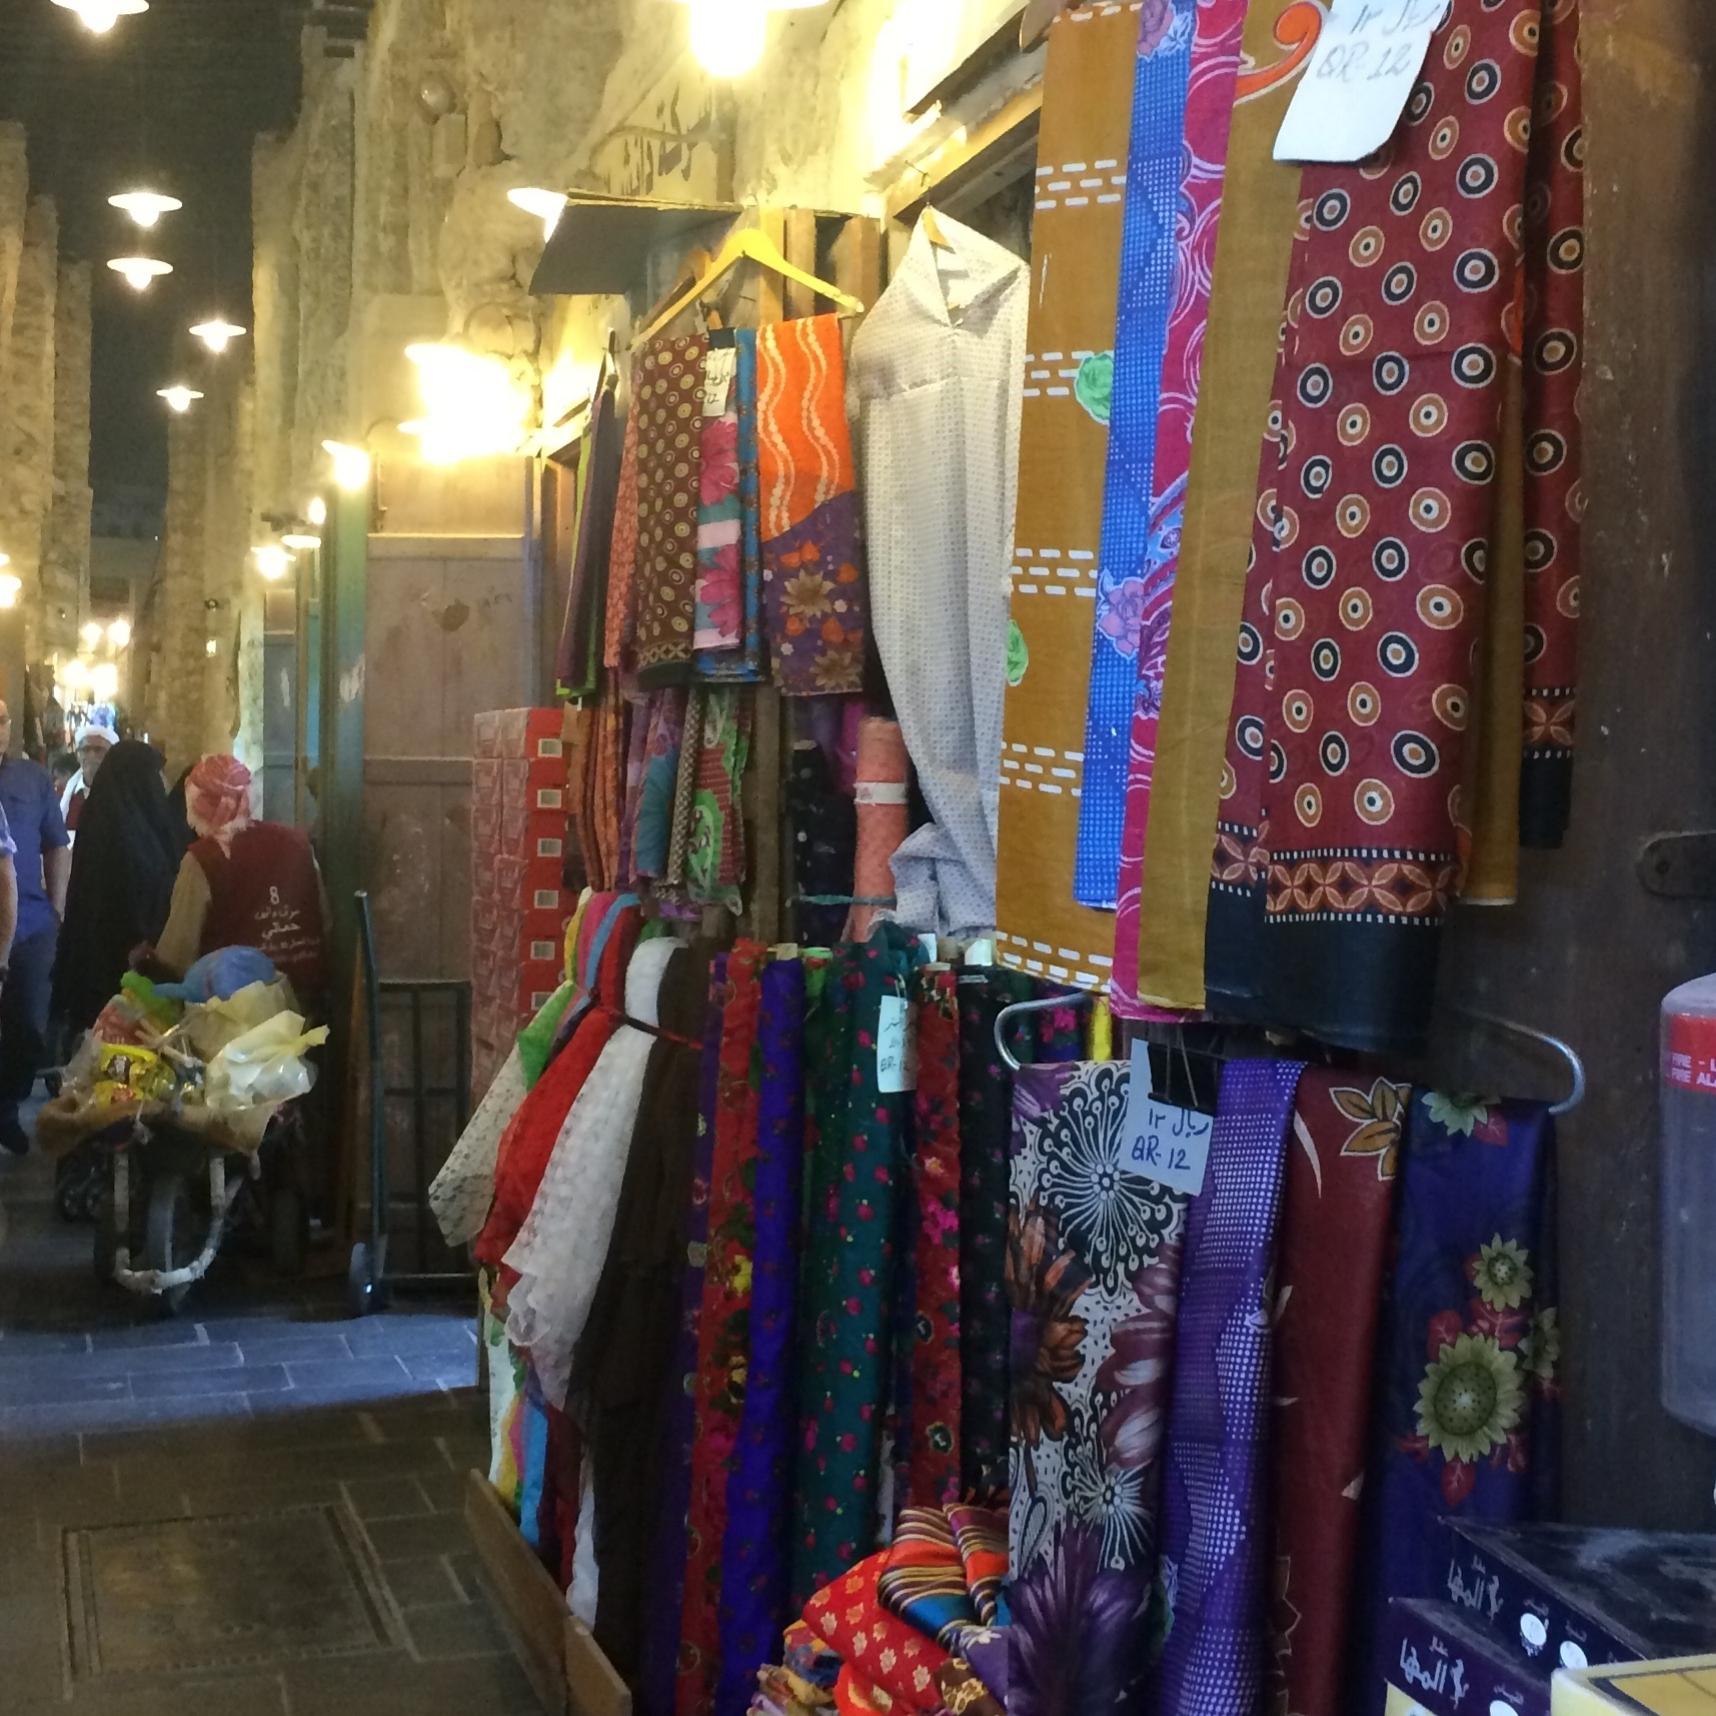 One of several alleyways in Souq Waqif full of beautiful textiles.